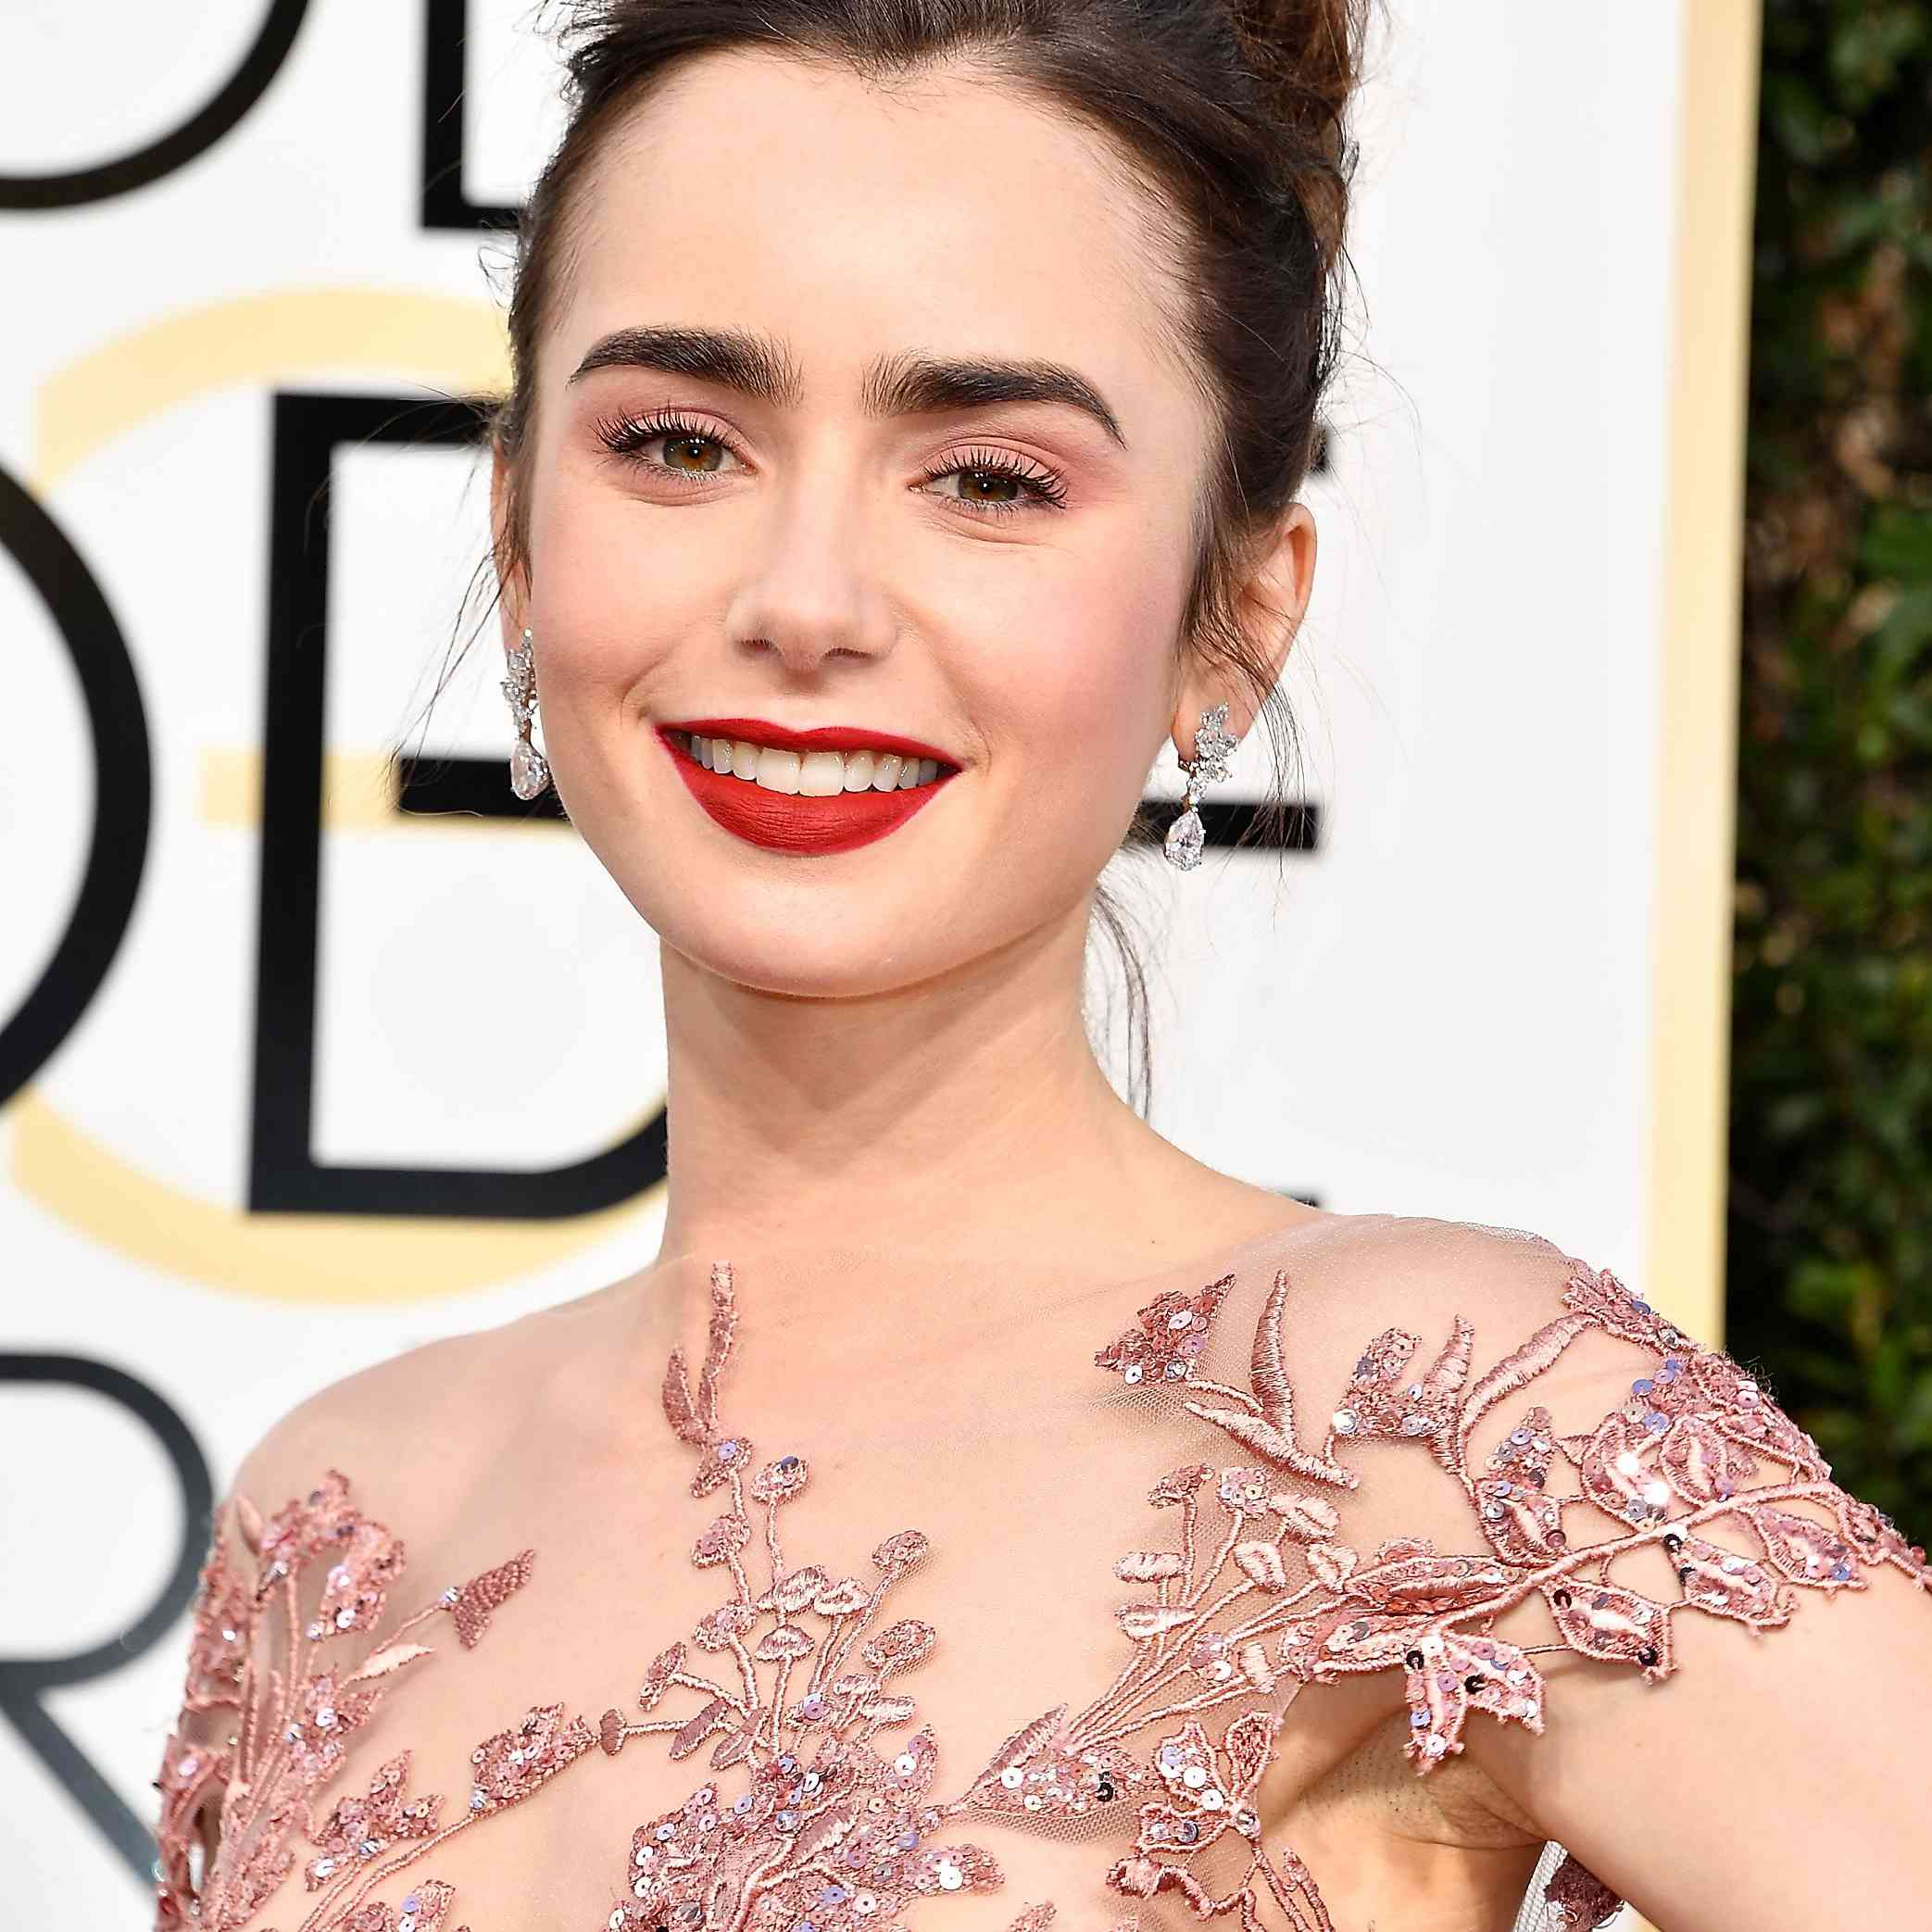 74th Annual Golden Globe Awards - Arrivals, Lilly Collins